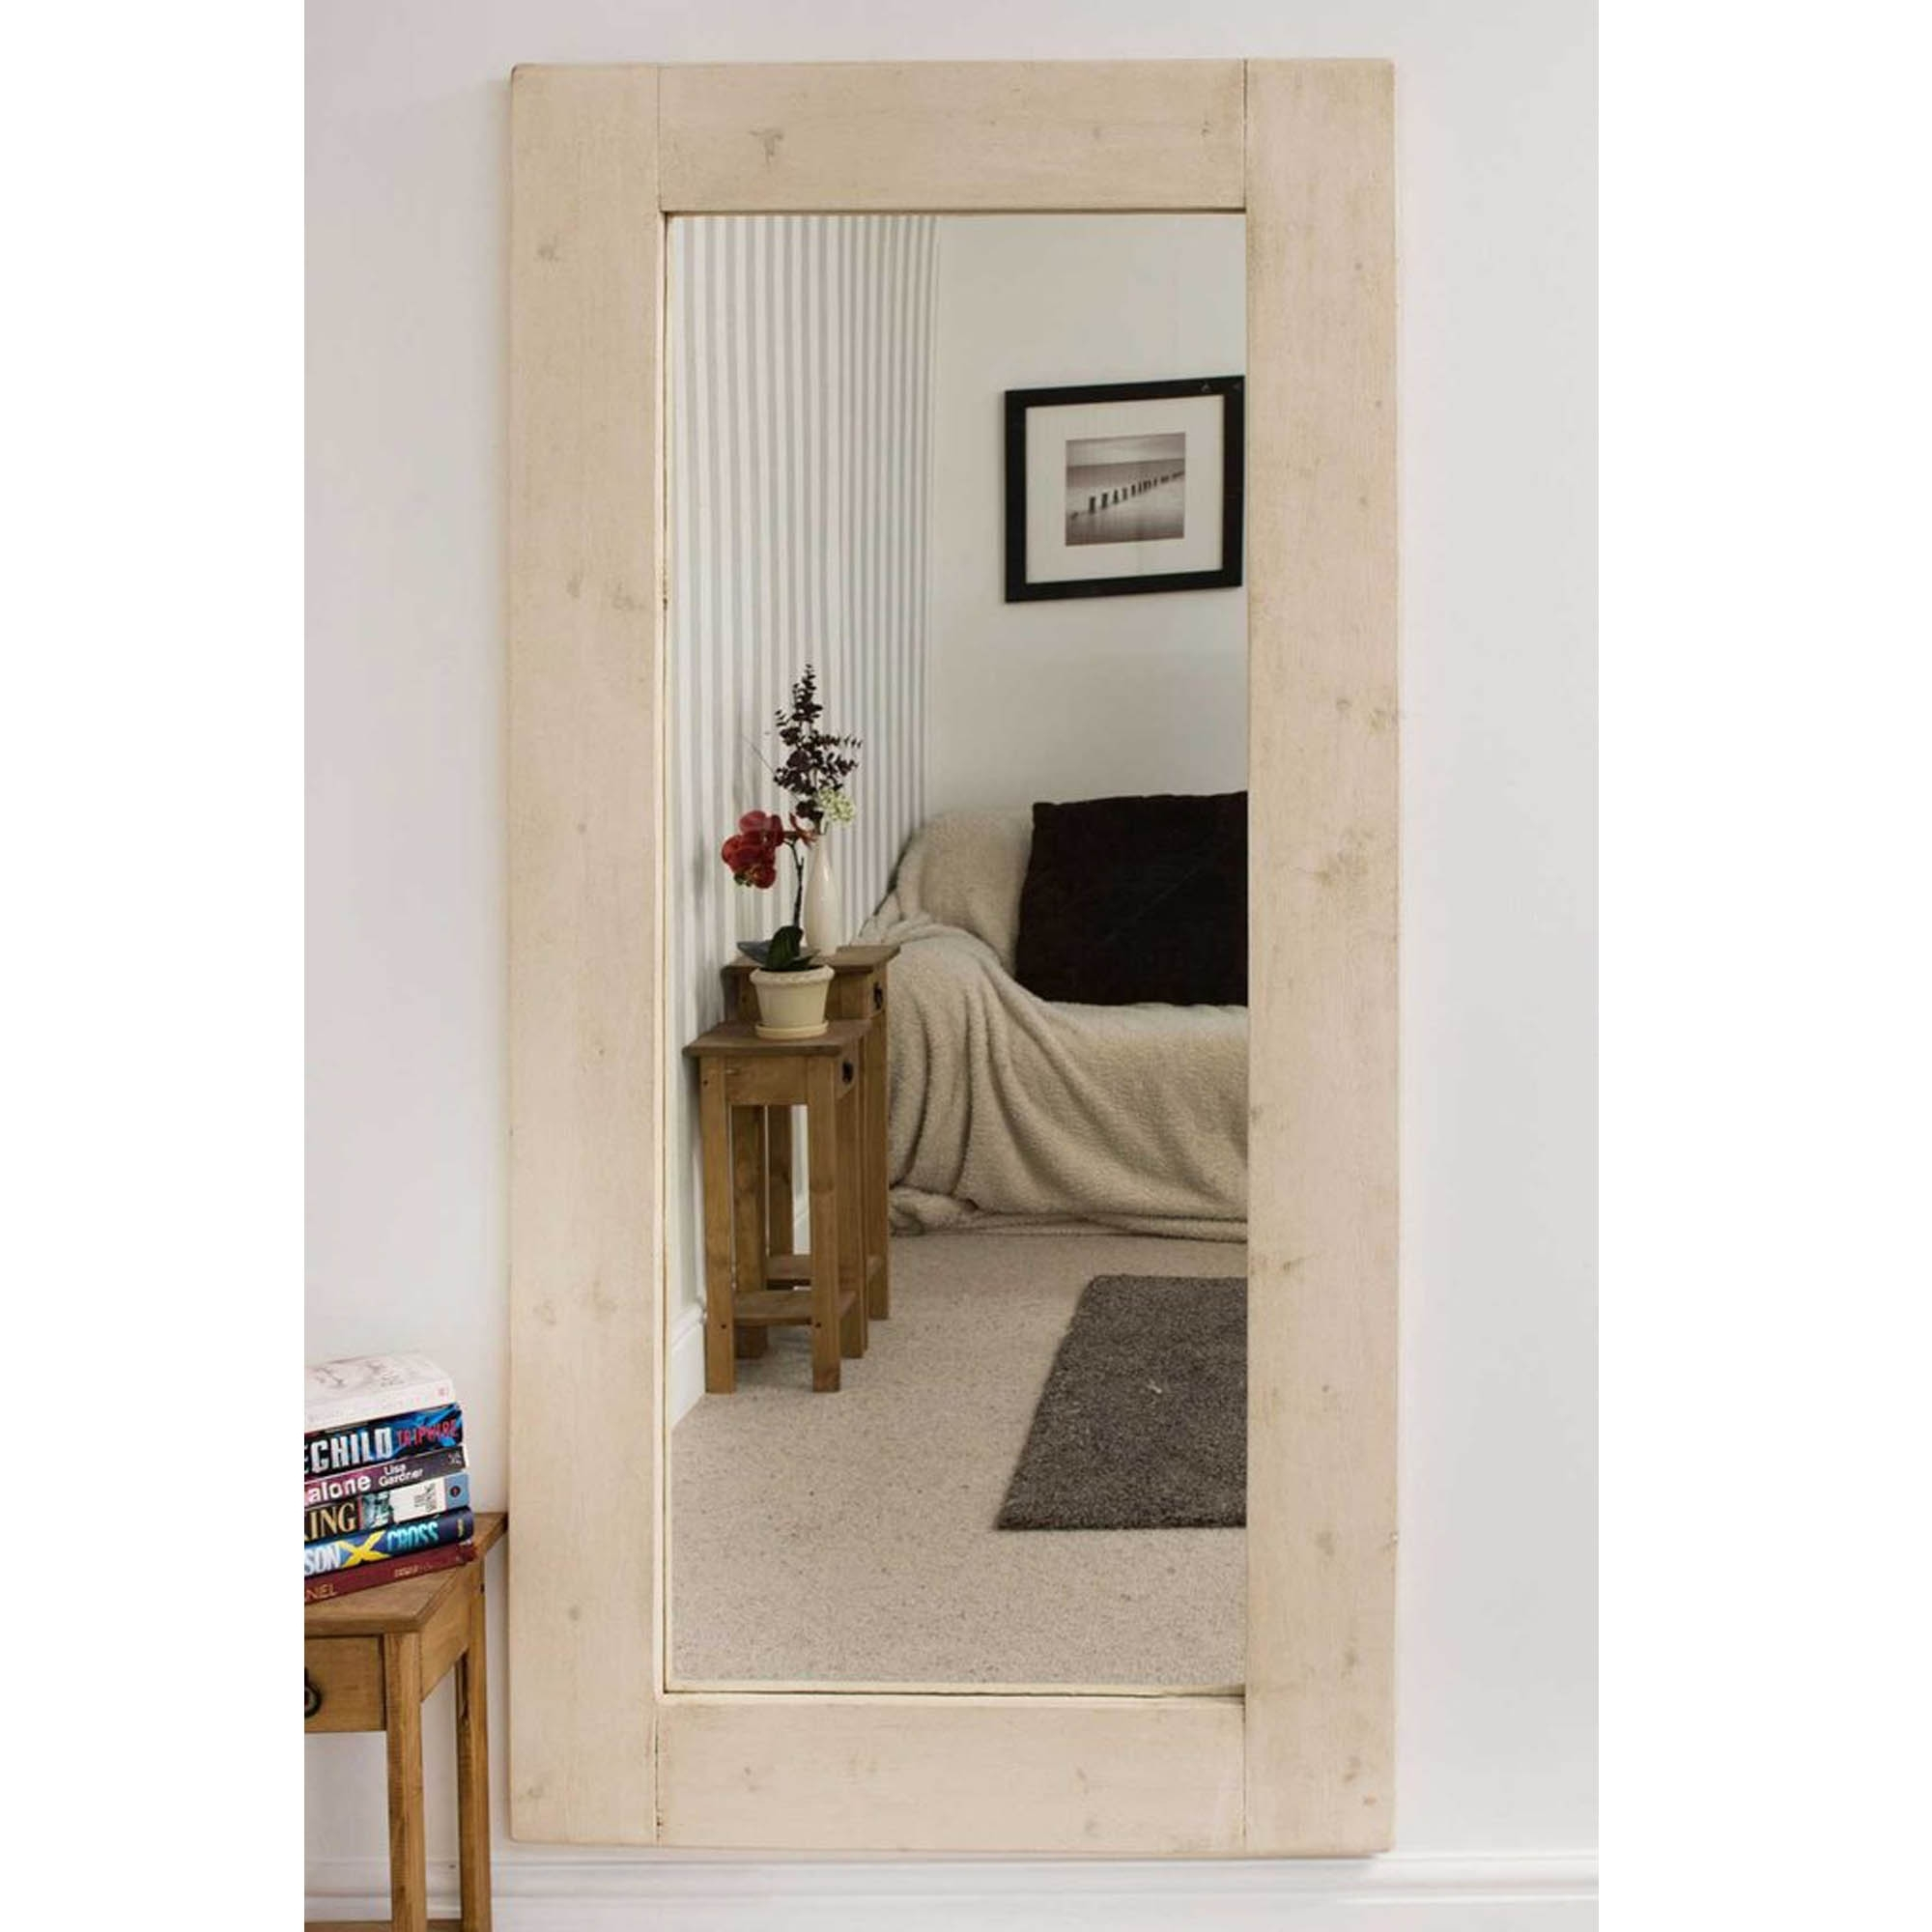 Thin rustic country house white wall mirror